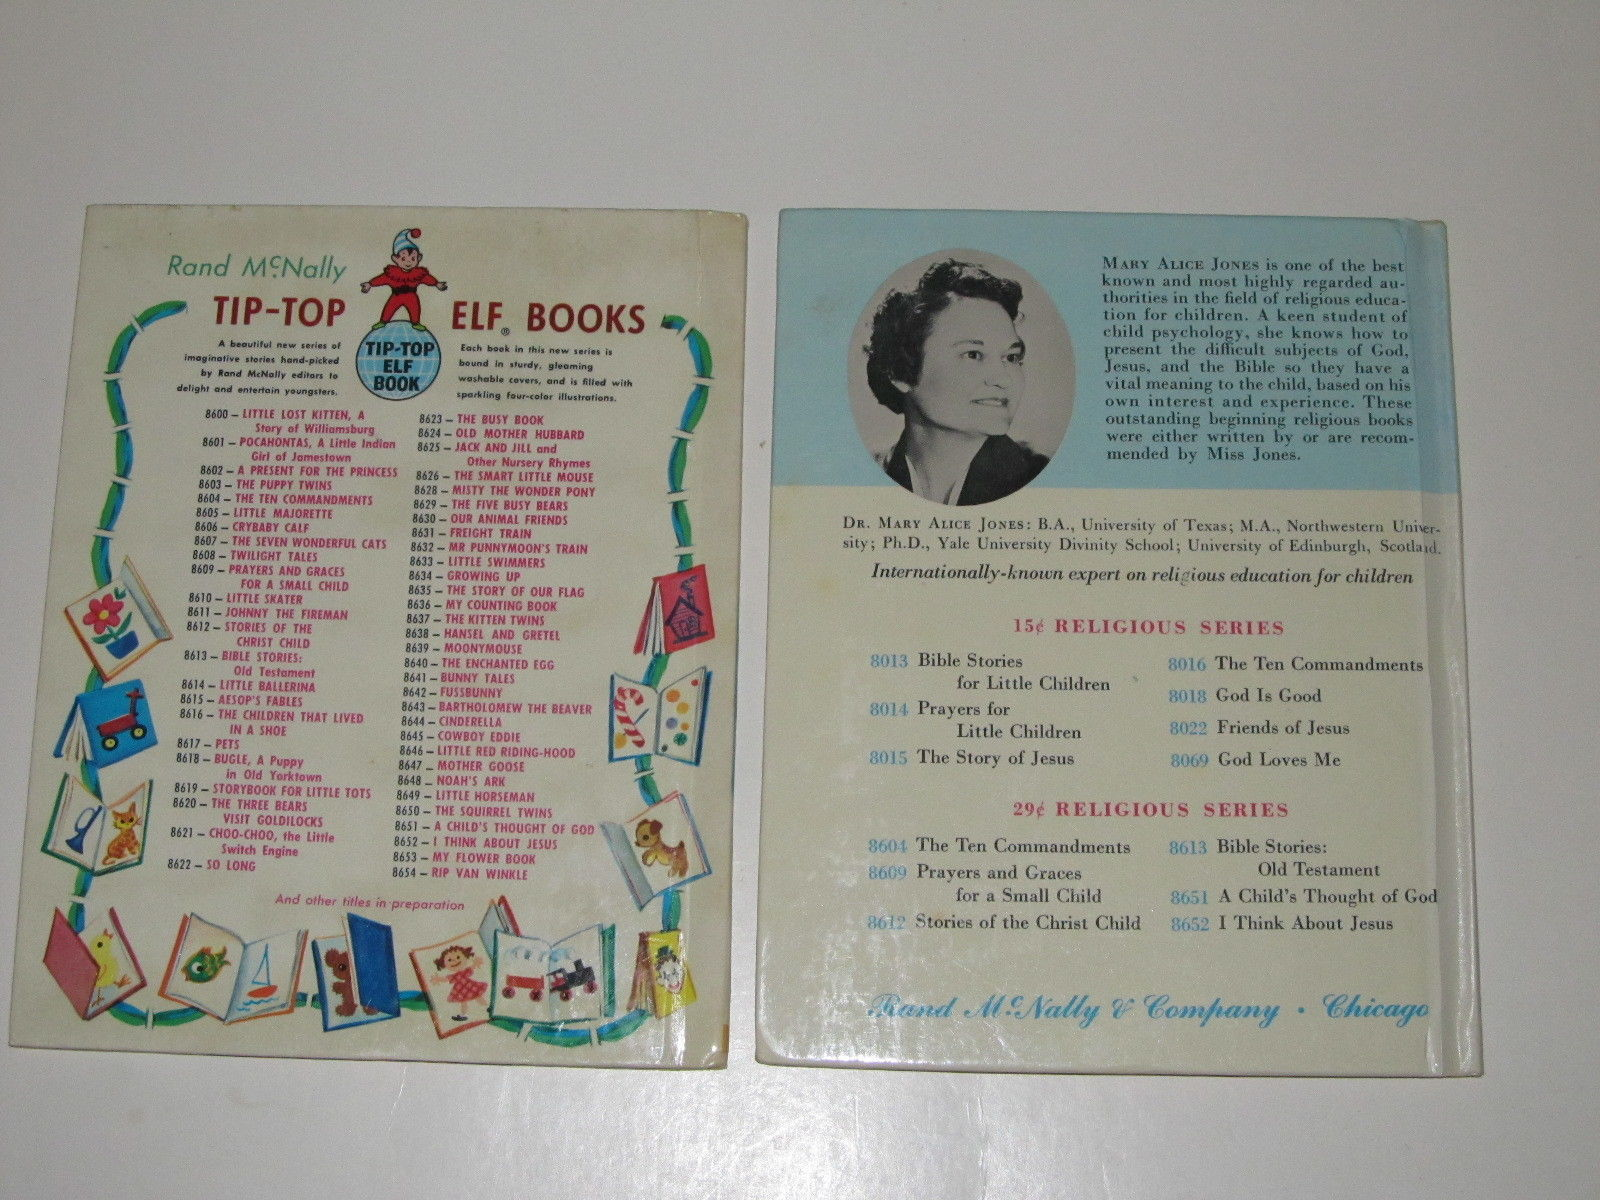 Pair of Vintage Religious Books for Children - Rand McNally Tip-Top Elf Books